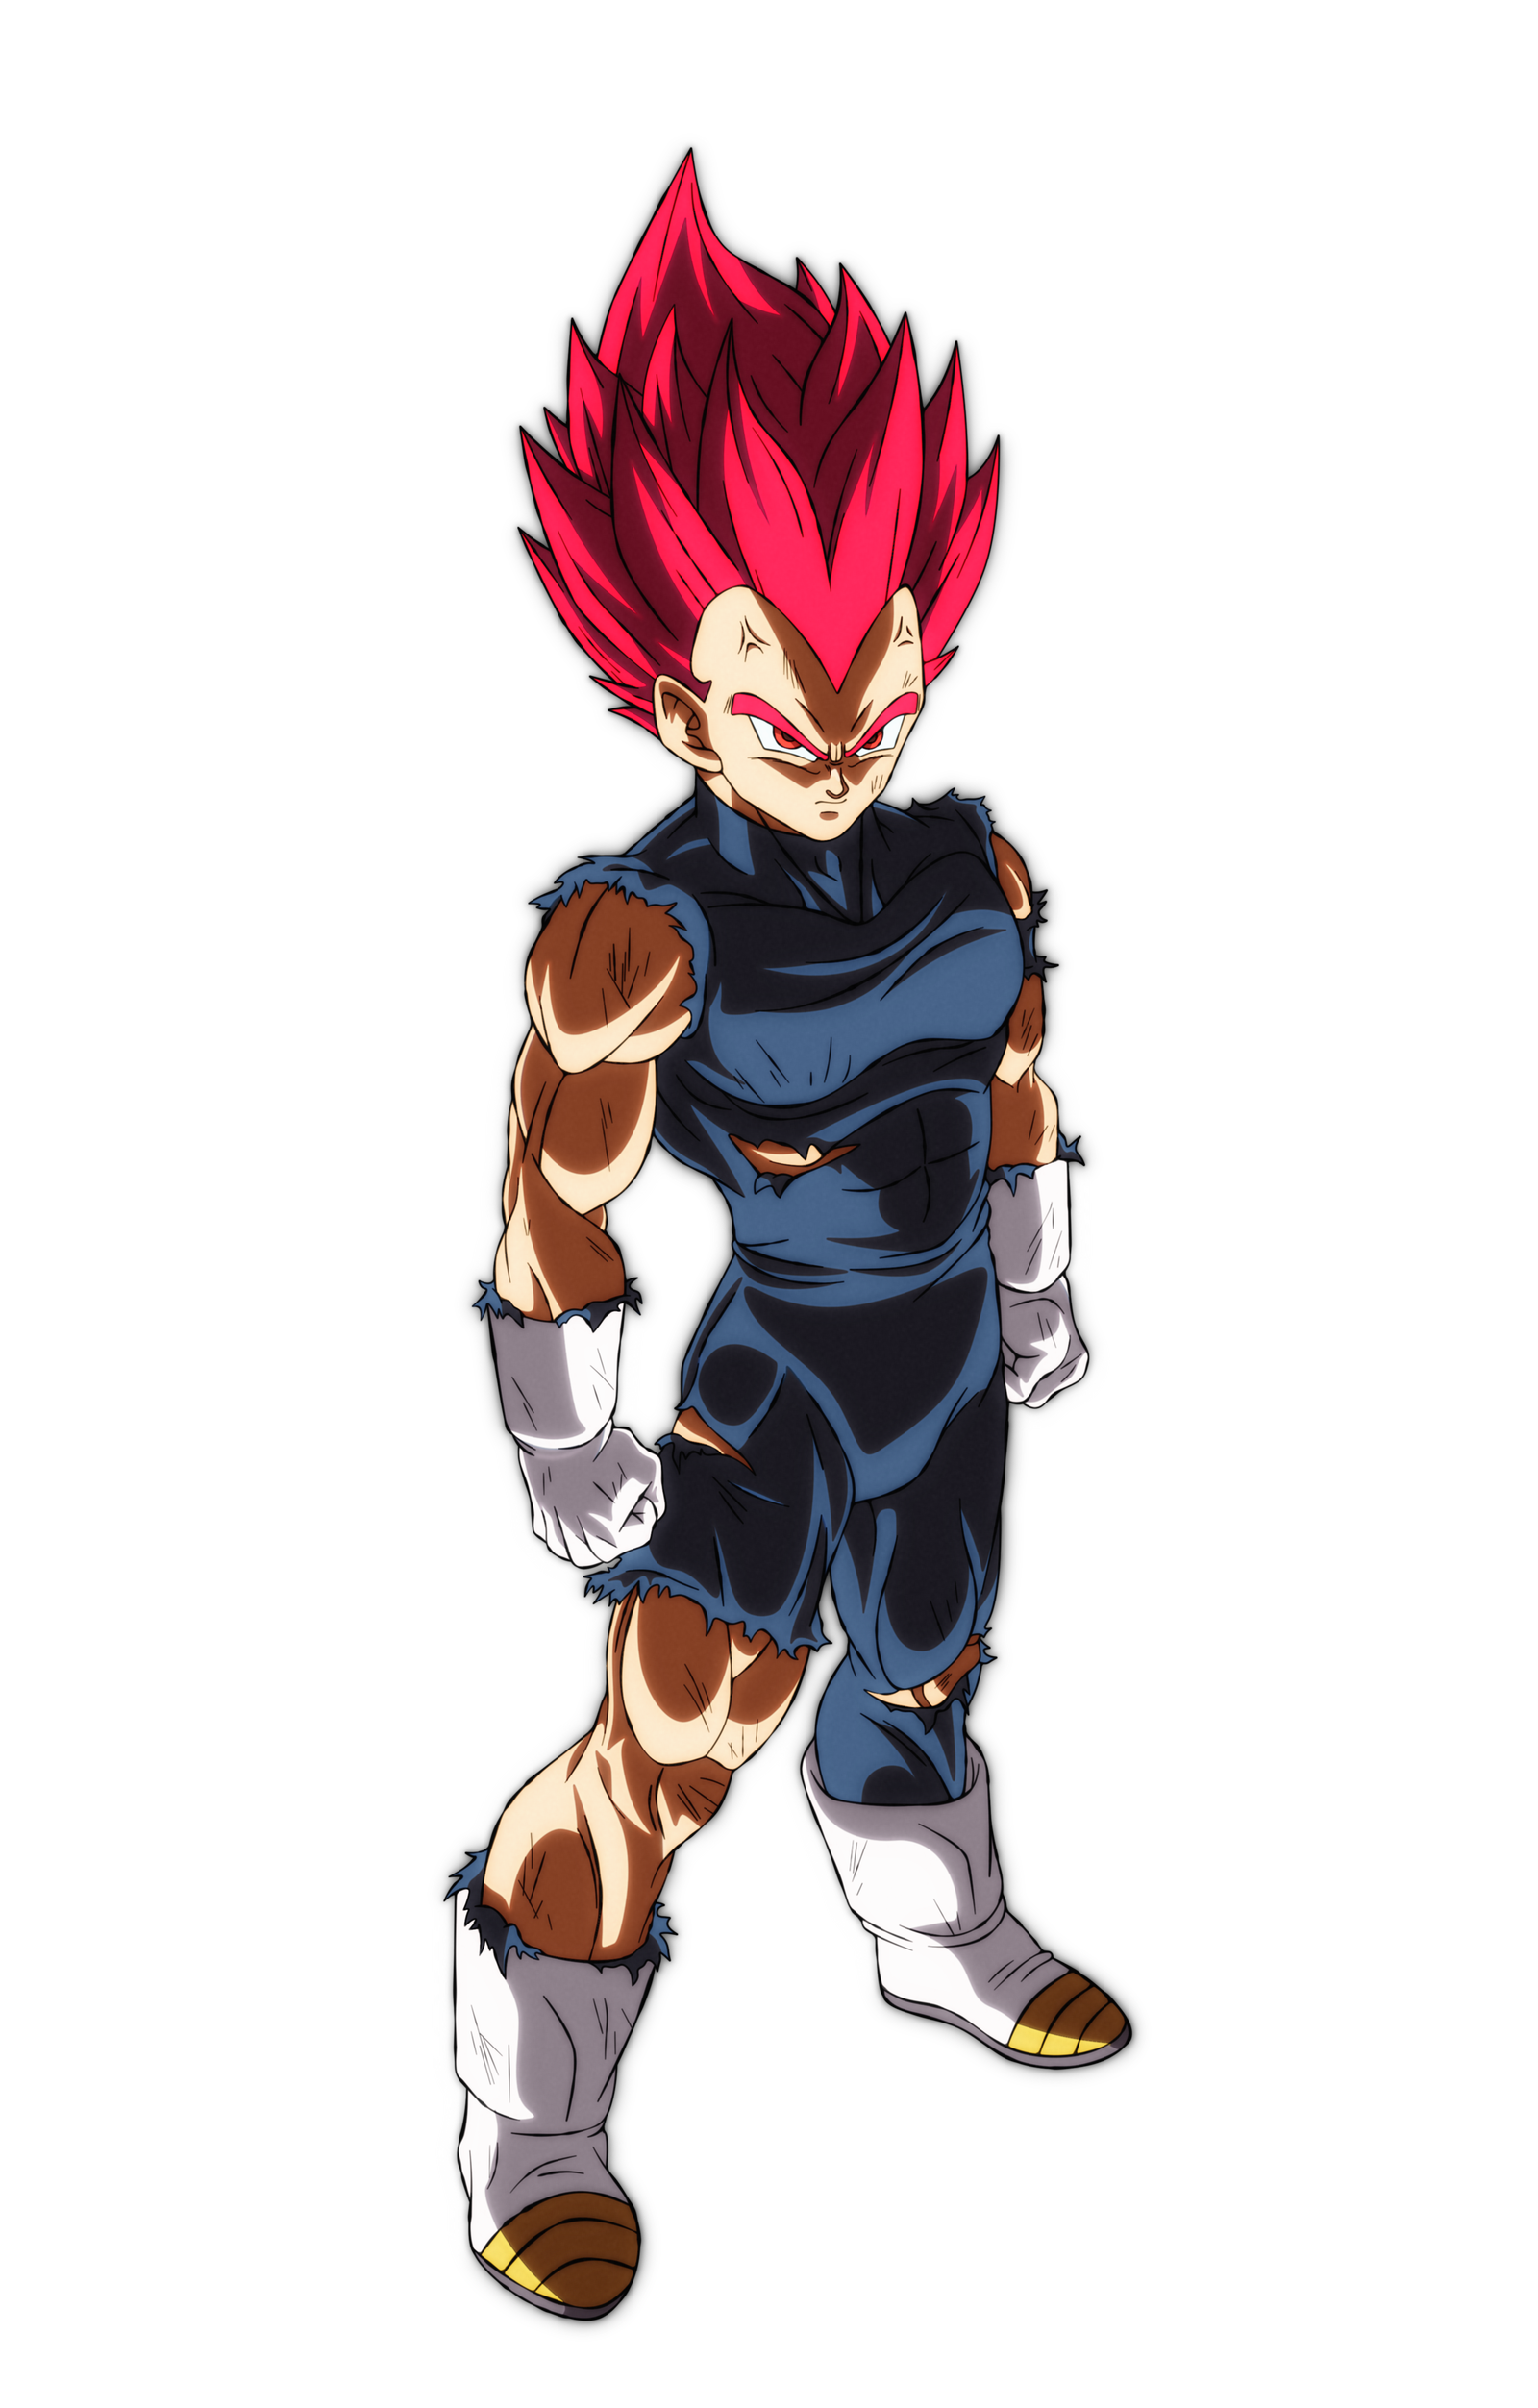 Vegeta Super Saiyan God Png - Vegeta Ssj God by Andrewdb13 on DeviantArt